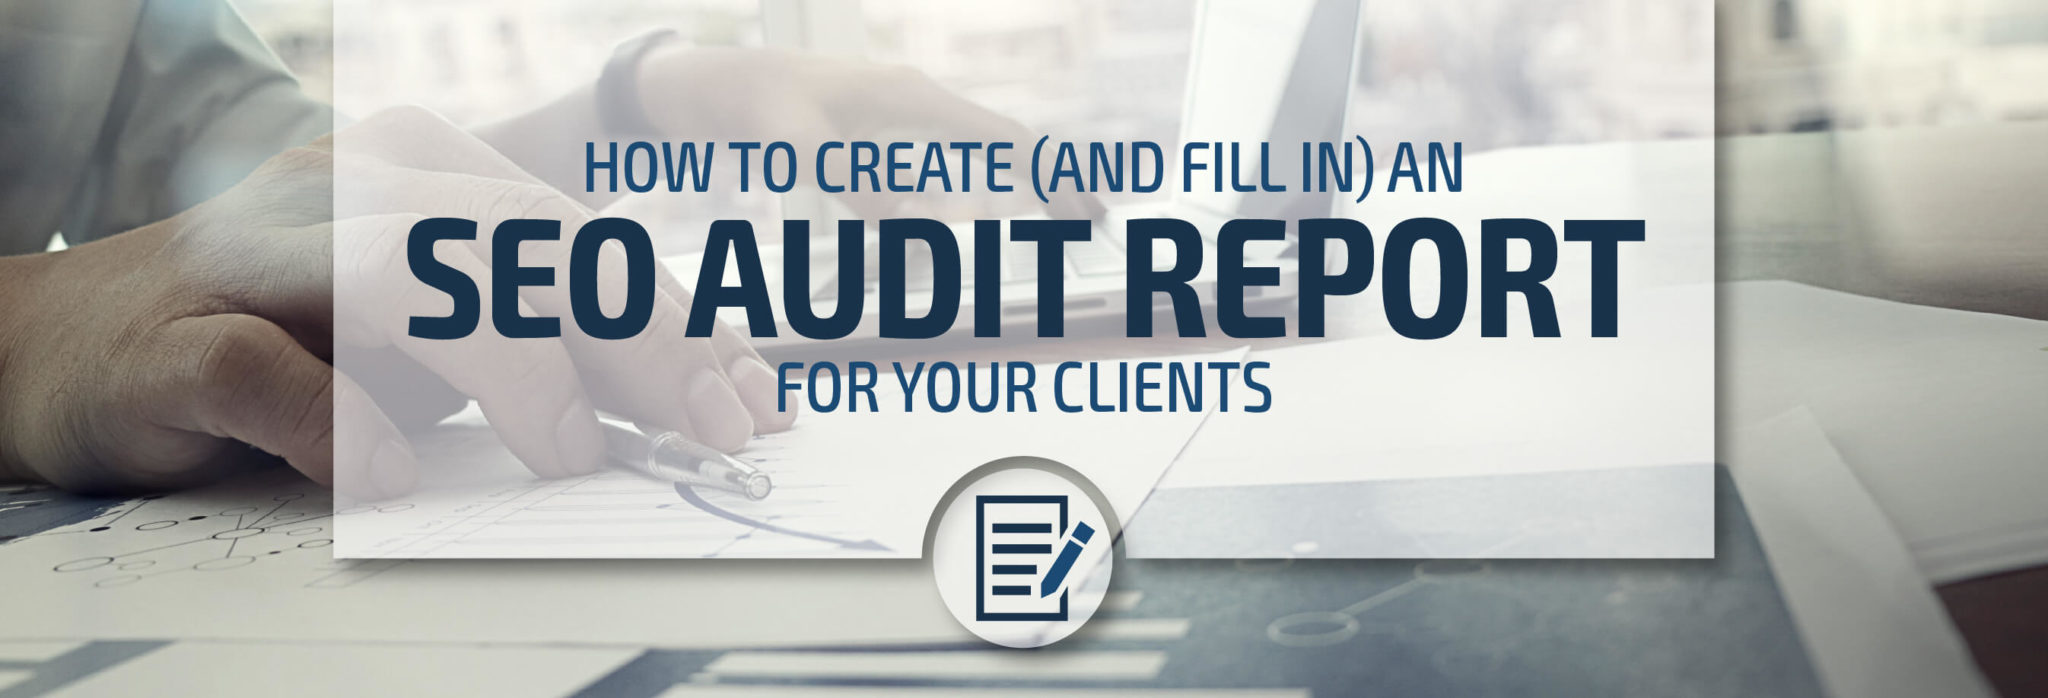 How to Create an SEO Audit Report for Your Clients